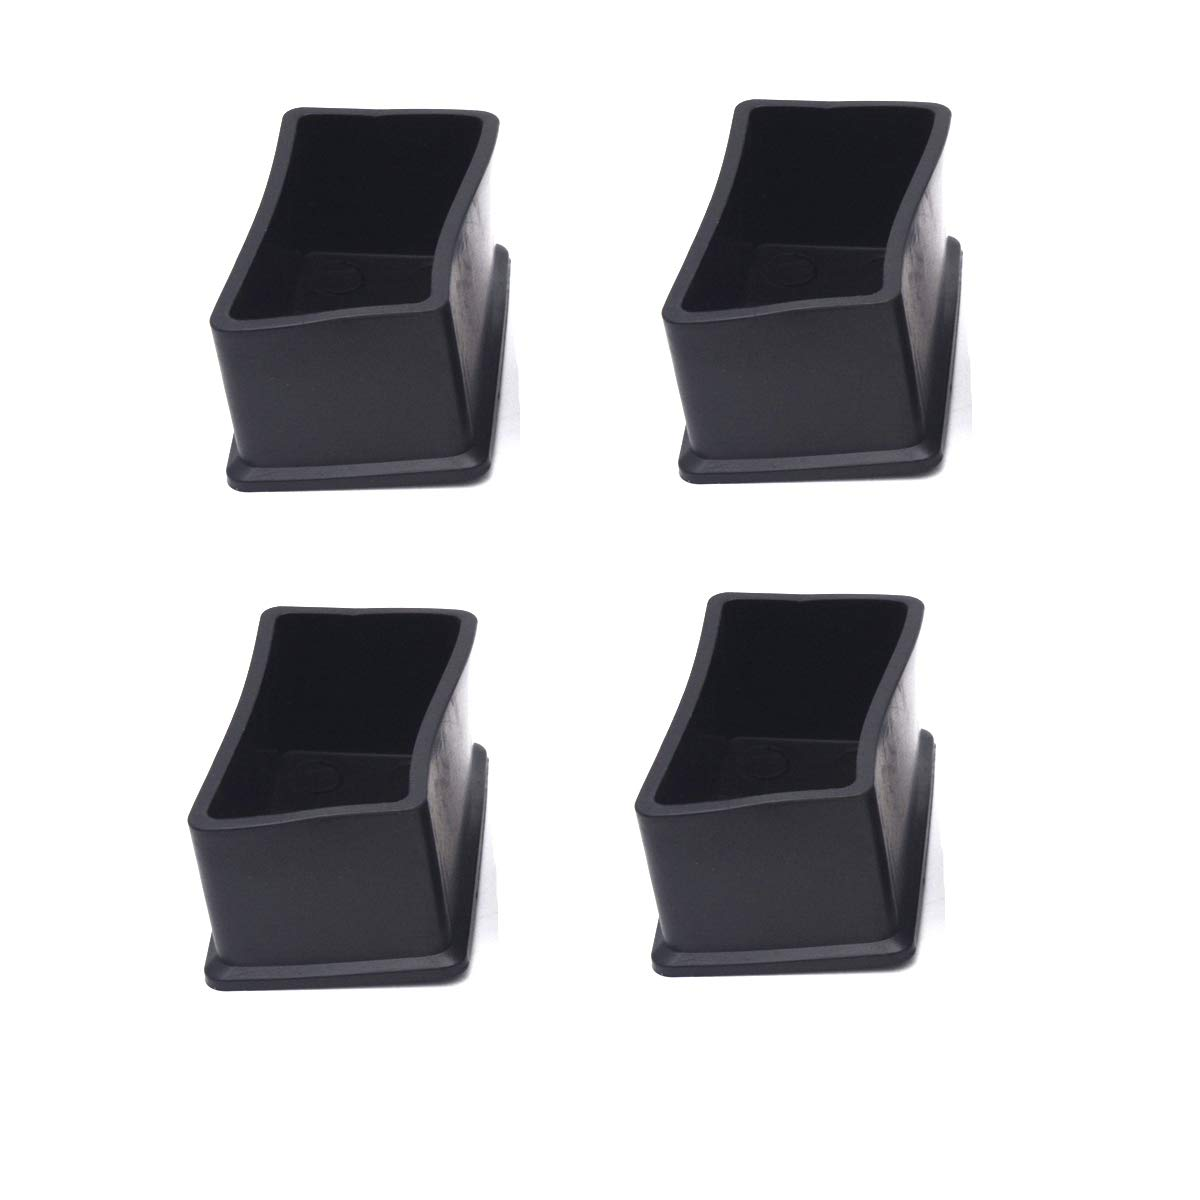 "Antrader 4PCS Table Chair Leg Tips Rectangle Shaped Rubber PVC Furniture Pads Foot End Caps Covers Protectors 1"" x 2"""